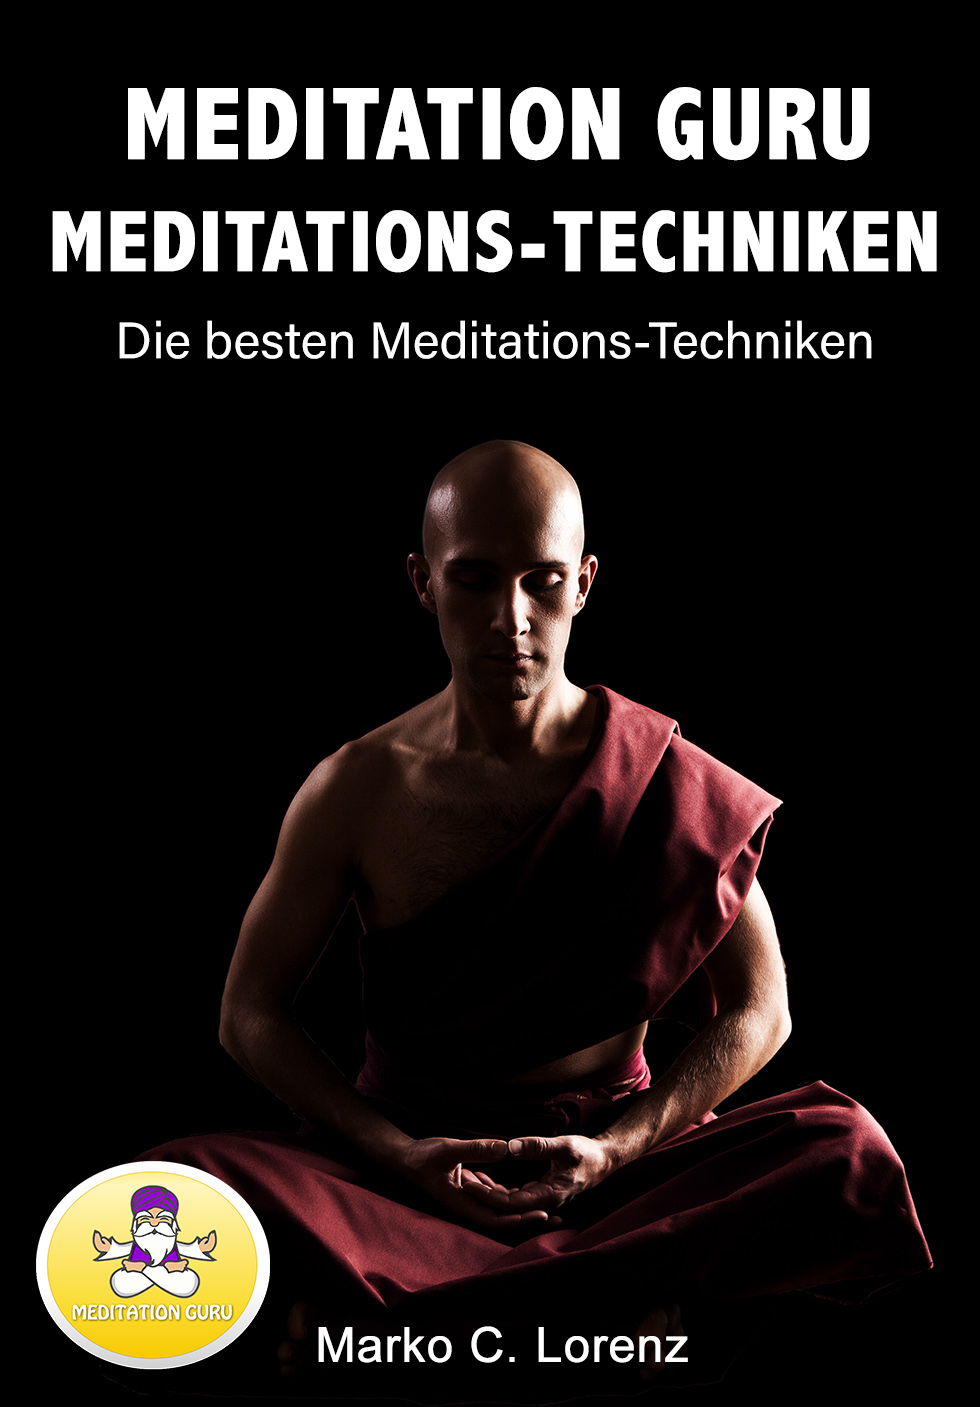 Meditation Guru Meditations-Techniken